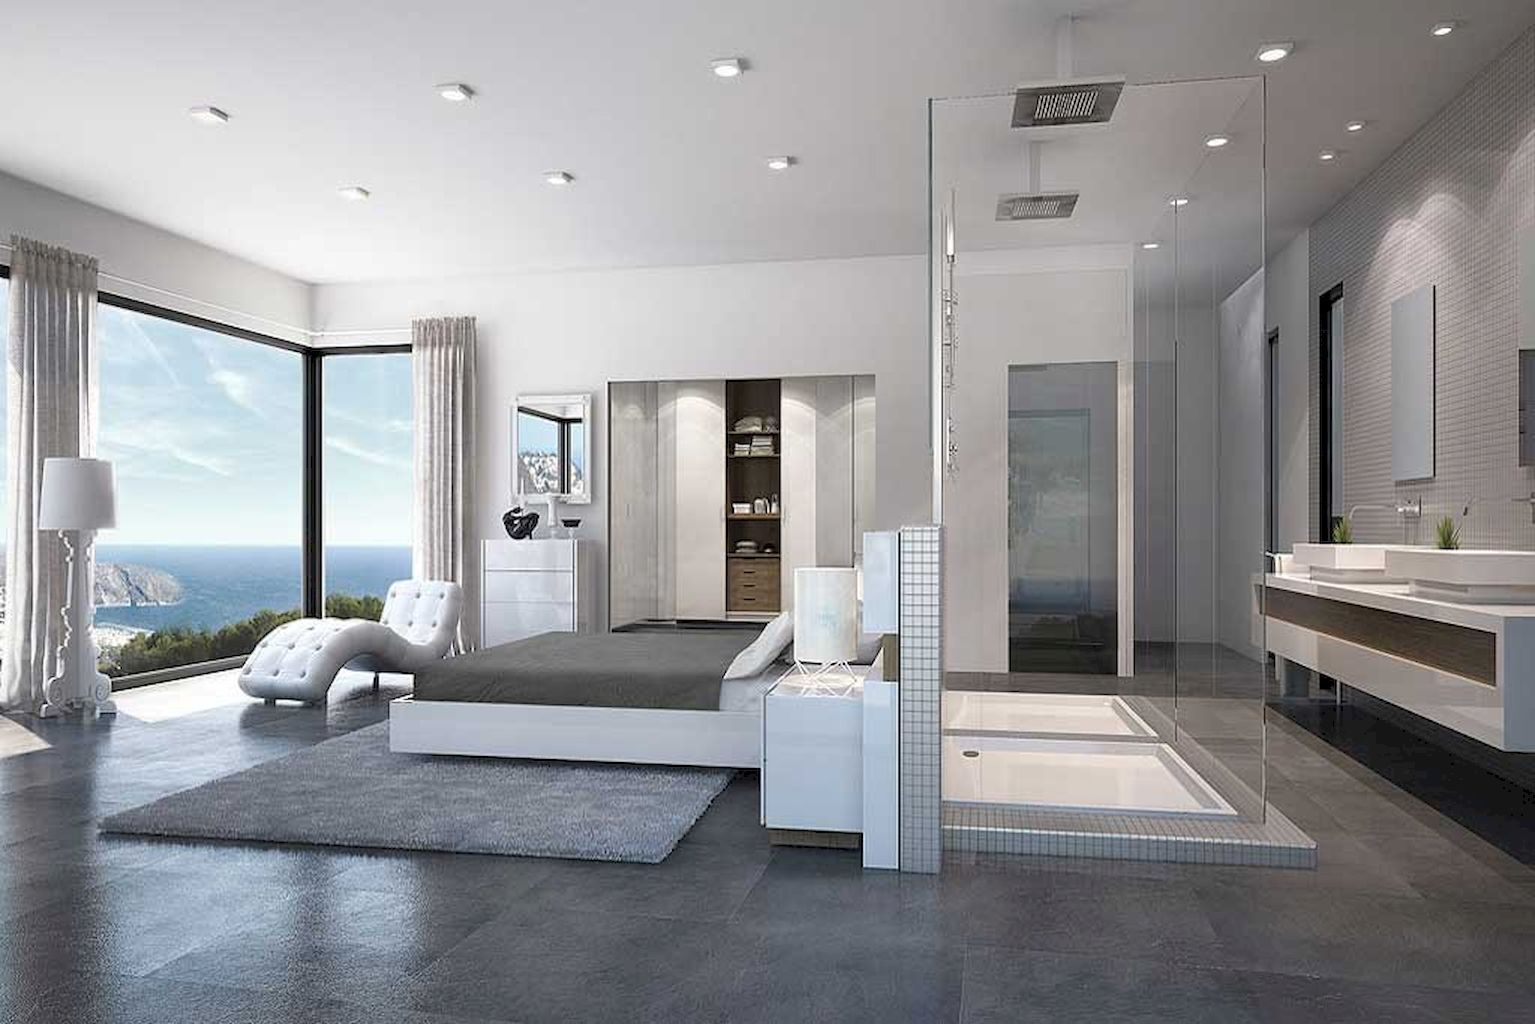 Gorgeous 60 Awesome Open Bathroom Concept For Master Bedrooms Decor Ideas Https Rooma Beautiful Bedroom Designs Master Bedrooms Decor Master Bedroom Bathroom Beautiful bedrooms and bathrooms